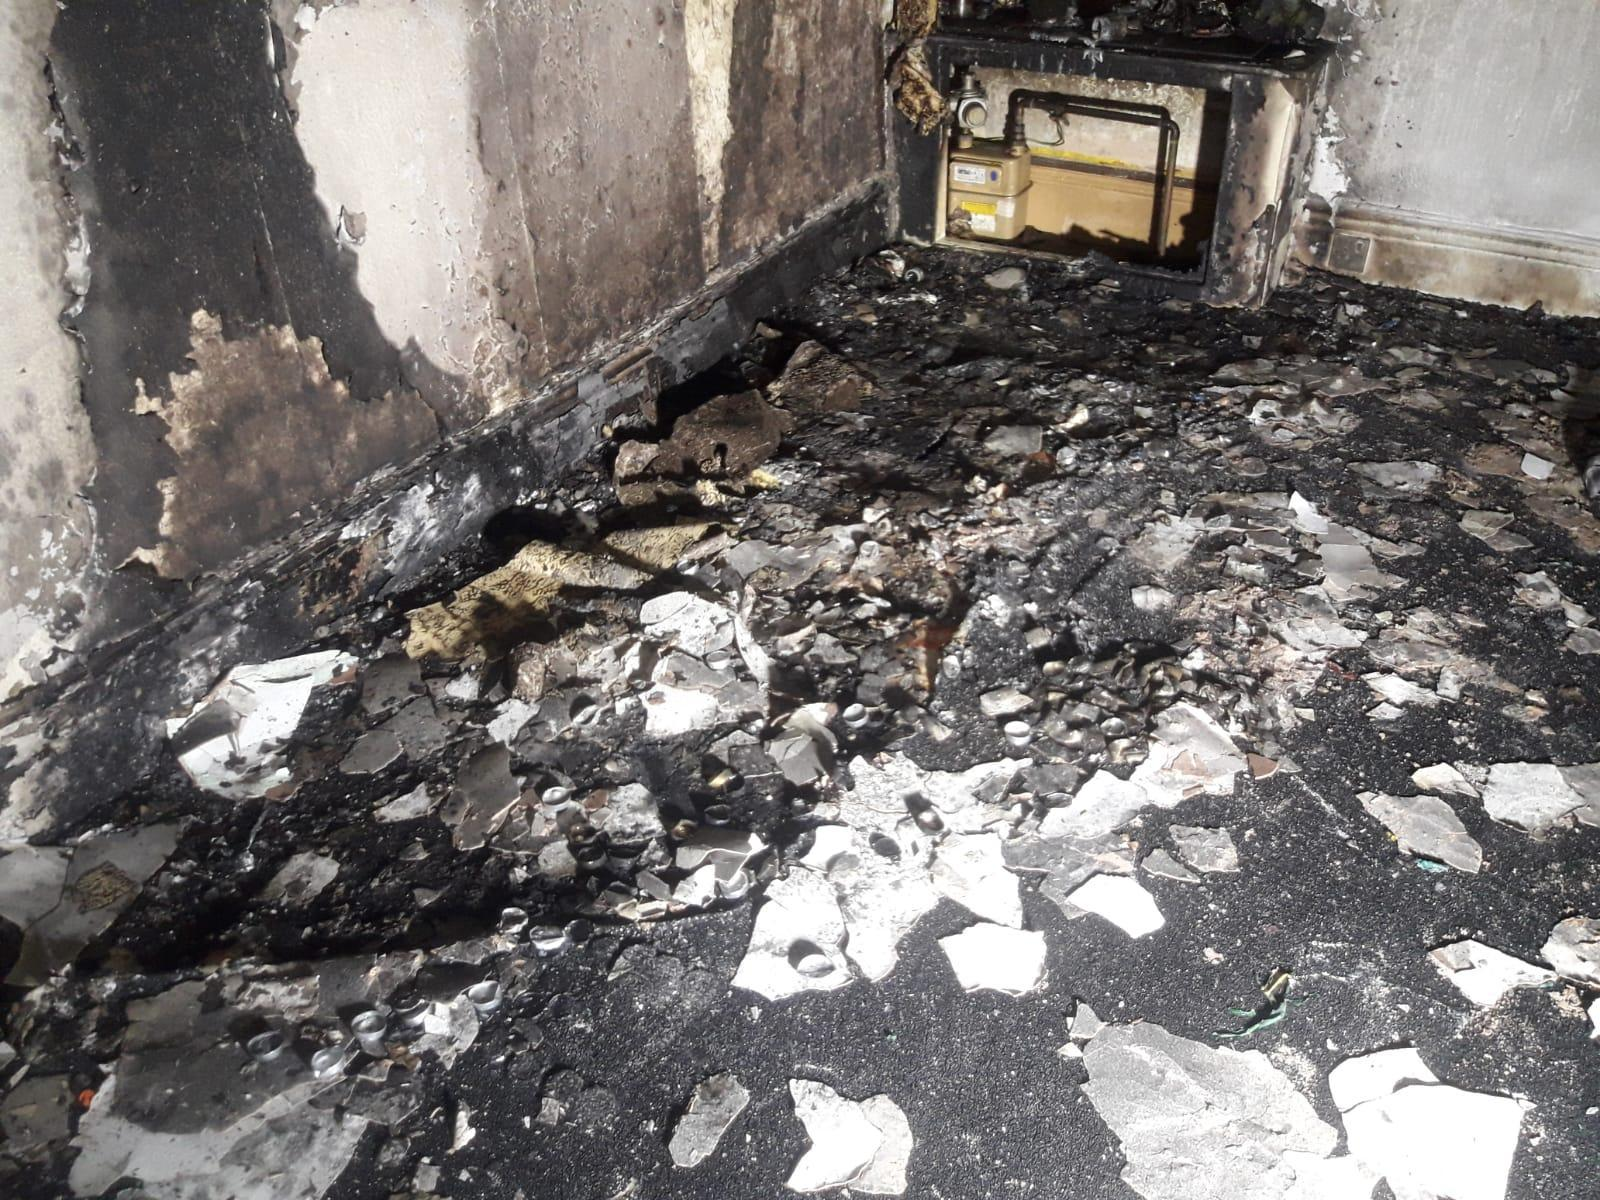 Yorkshire man sets entire flat on fire in disastrous proposal attempt - but did she say yes?